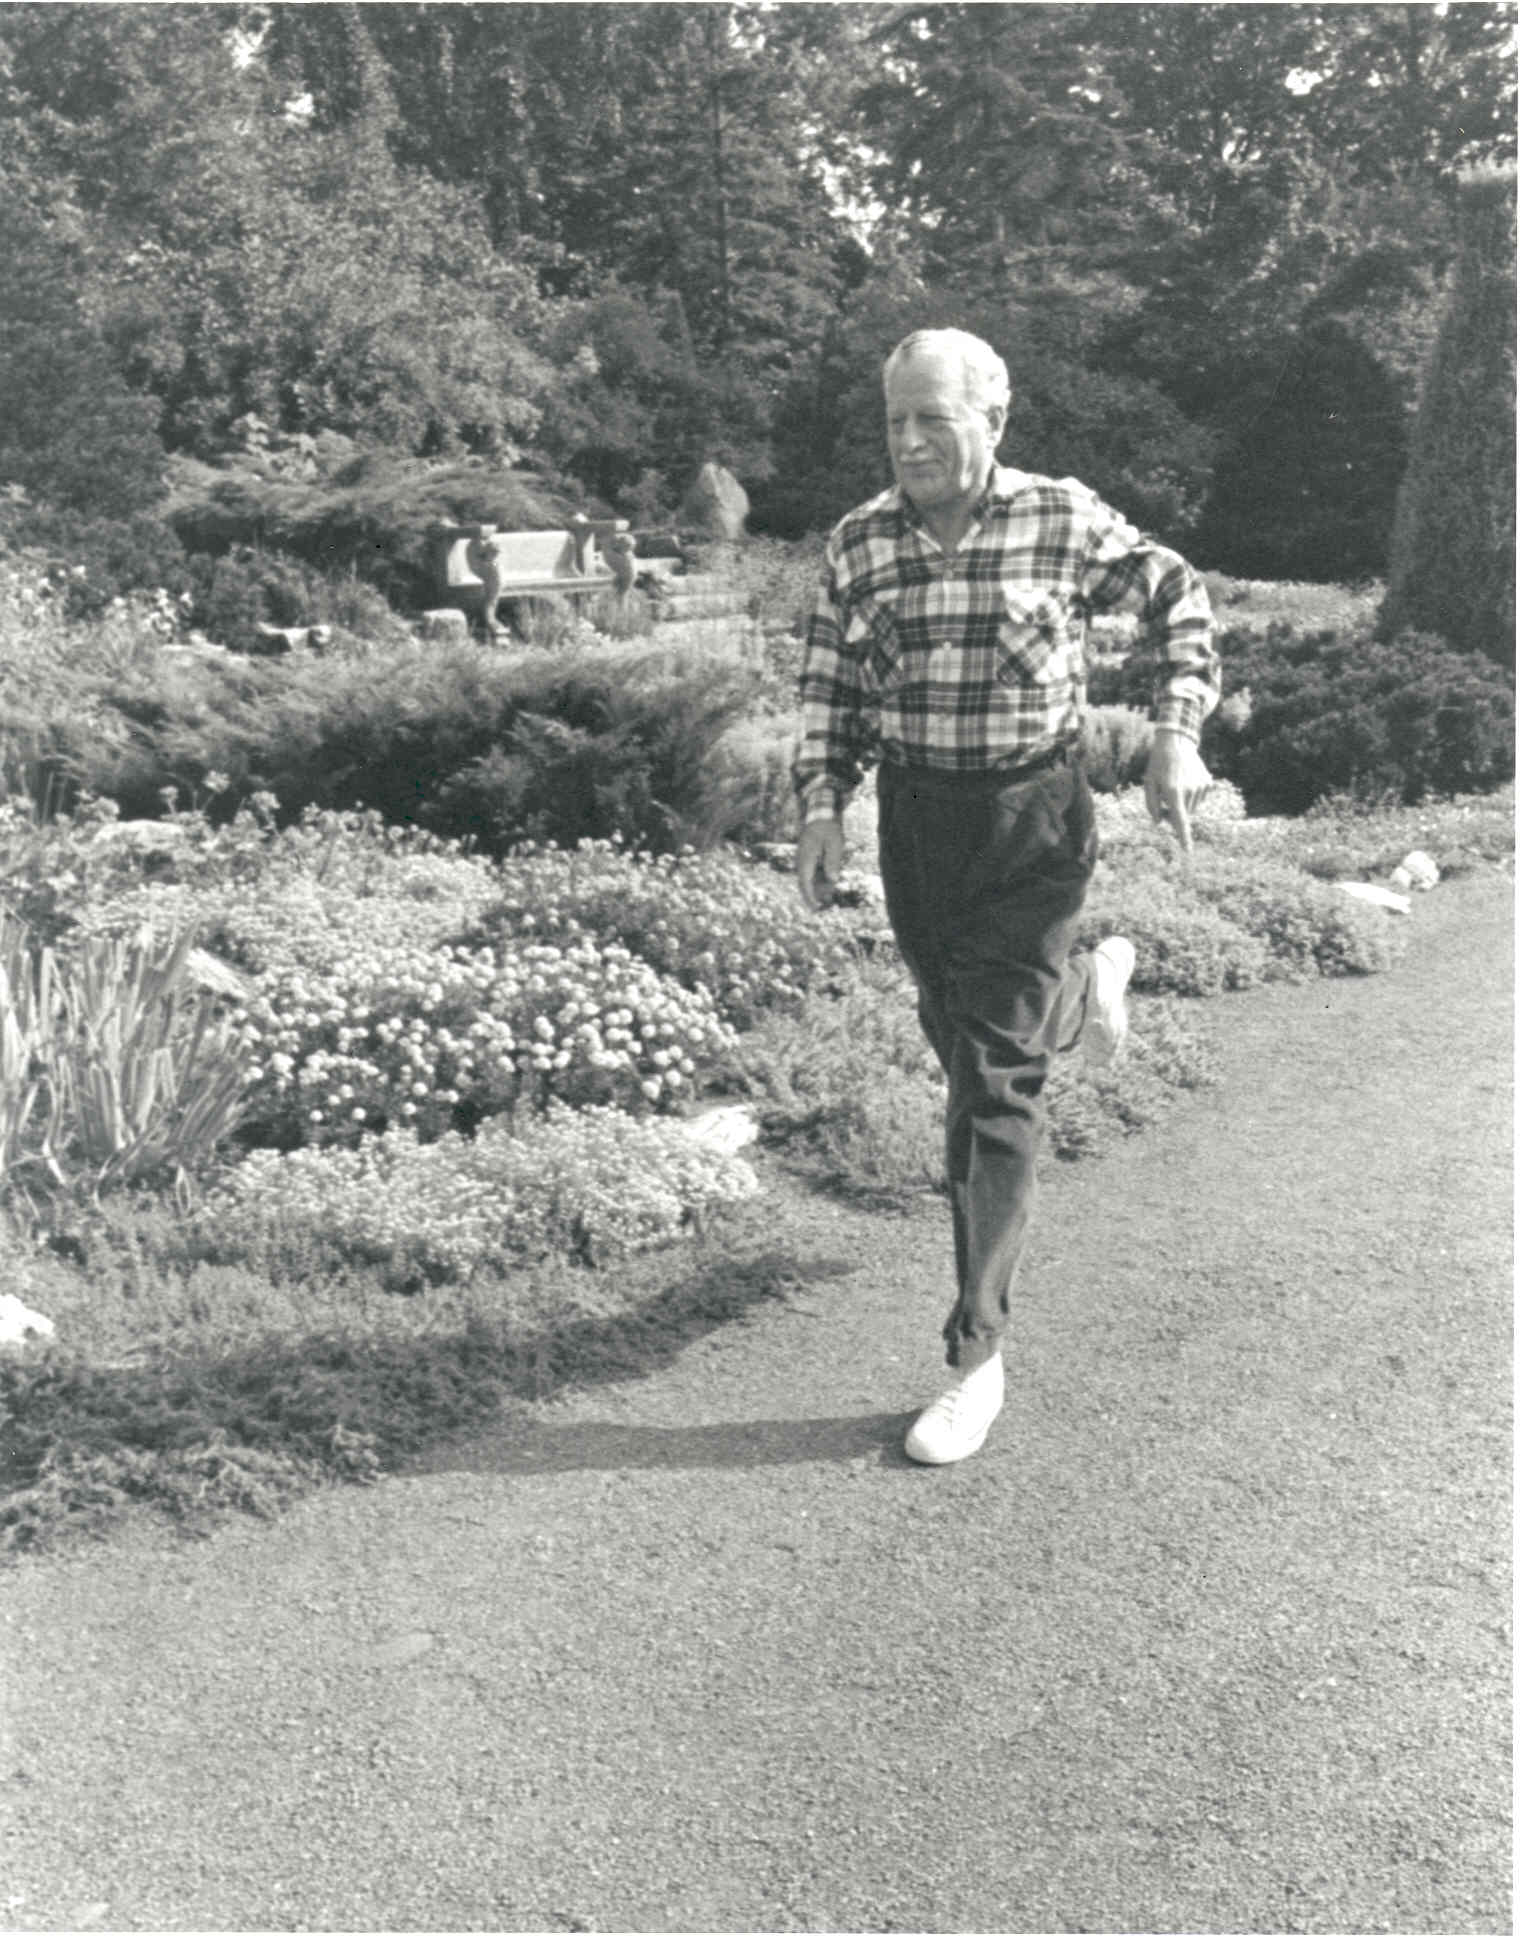 A keen sportsman, Governor General Roland Michener would jog daily when he was at Rideau Hall. Date: August 1967. Photographer: Duncan Cameron. Reference: Library and Archives Canada, PA-117119.